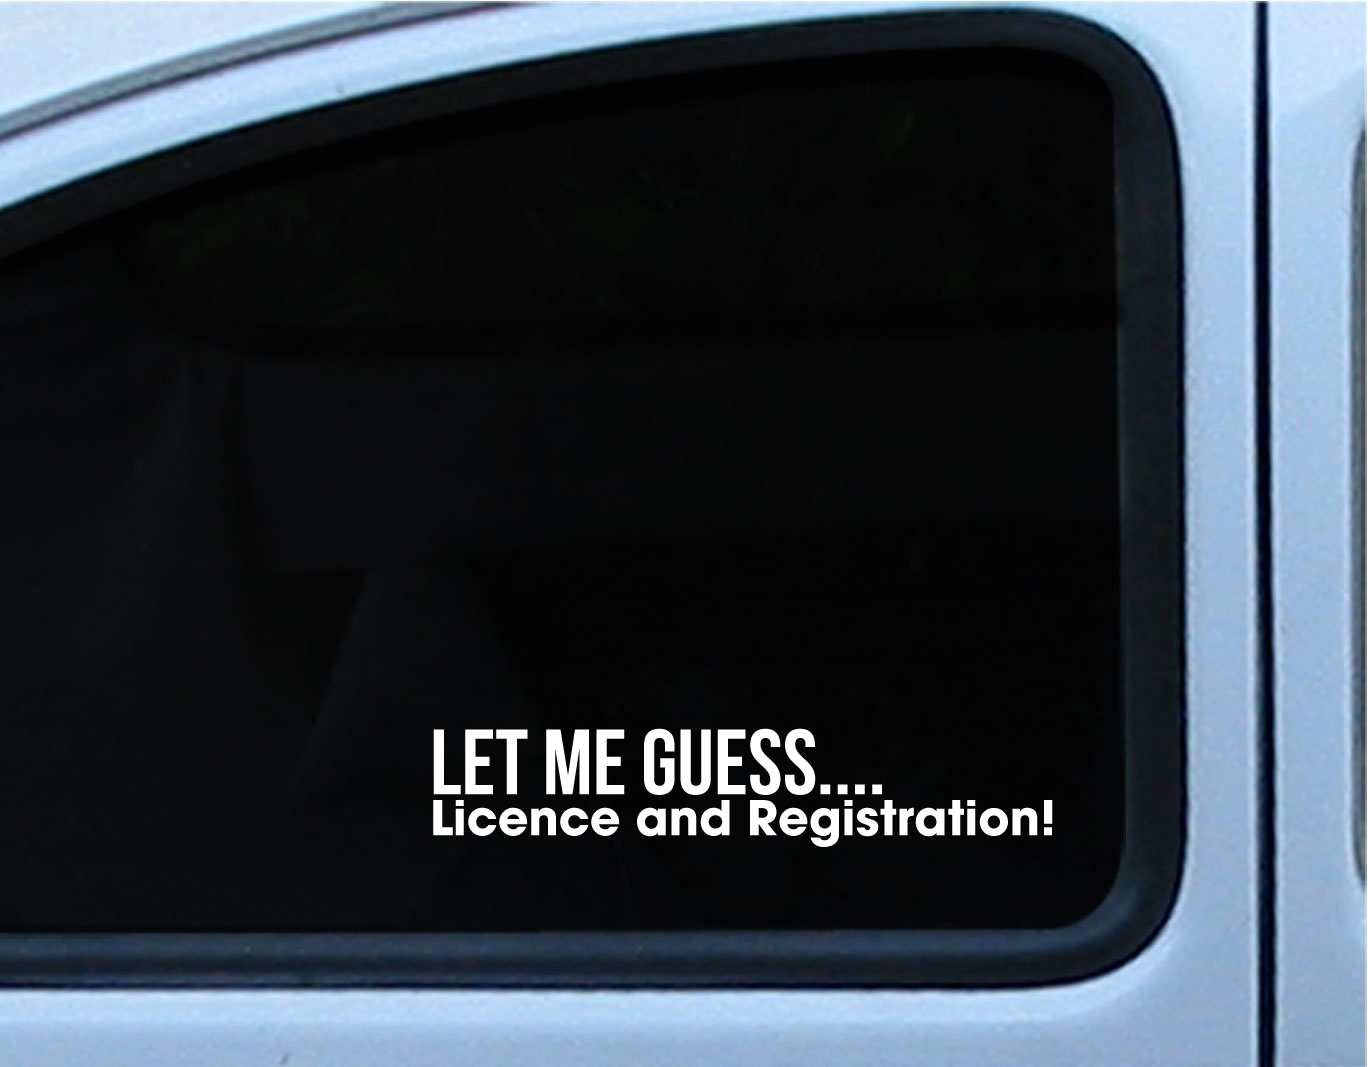 Jdm funny let me guess license and registration pull over decal sticker vinyl from stick it die cut stickers